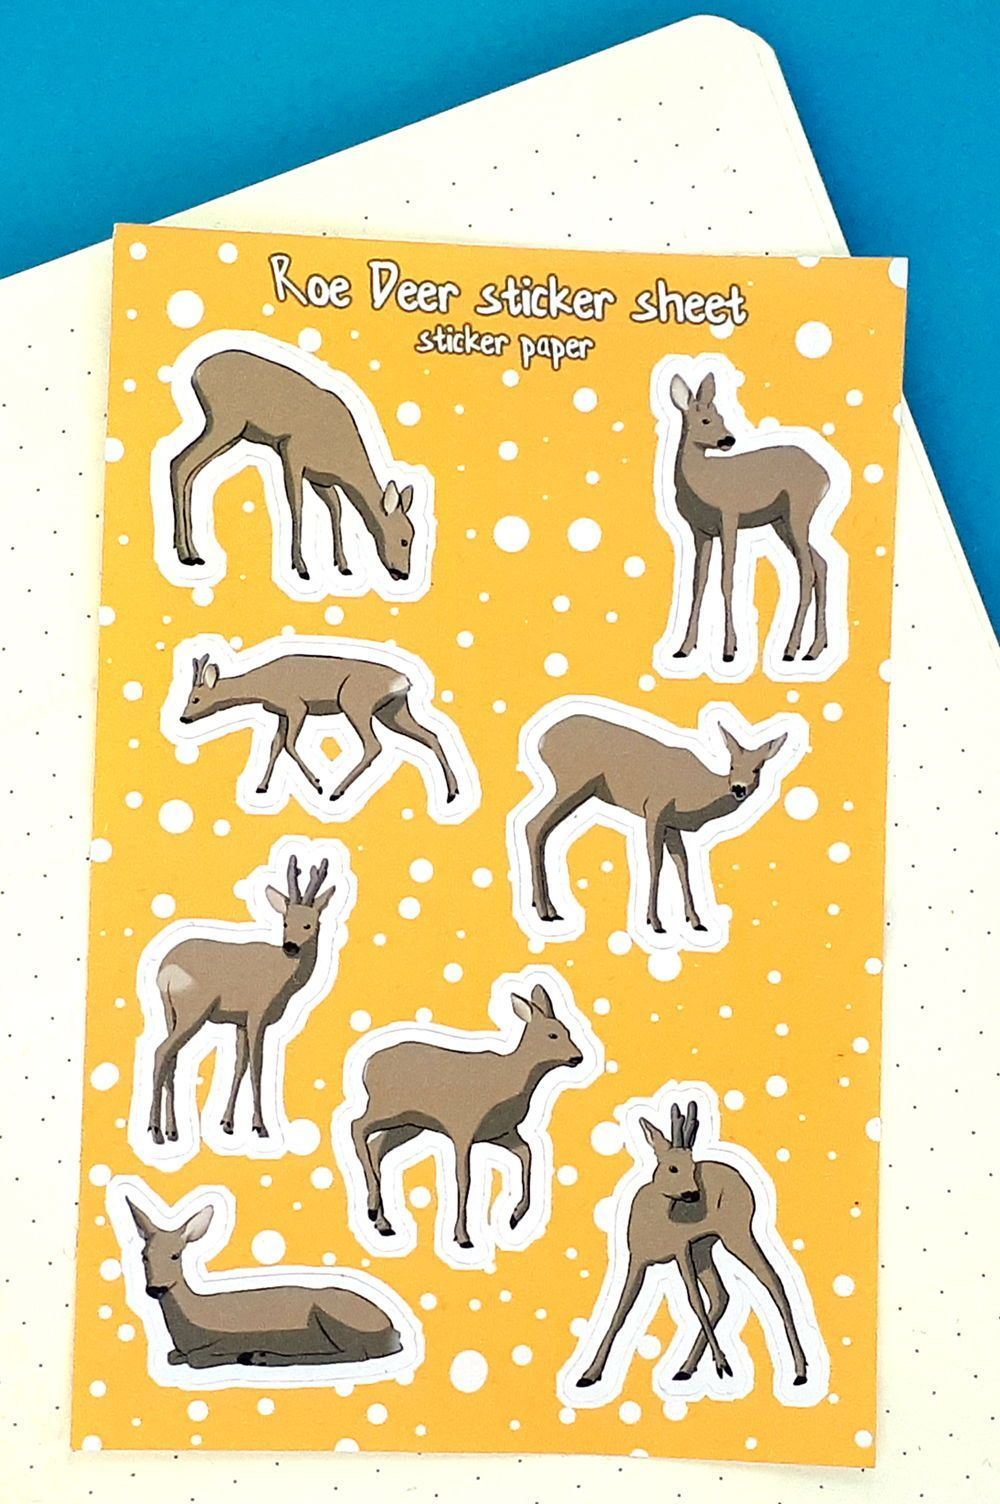 8 charming roe deer vinyl stickers for your bullet journal | Etsy